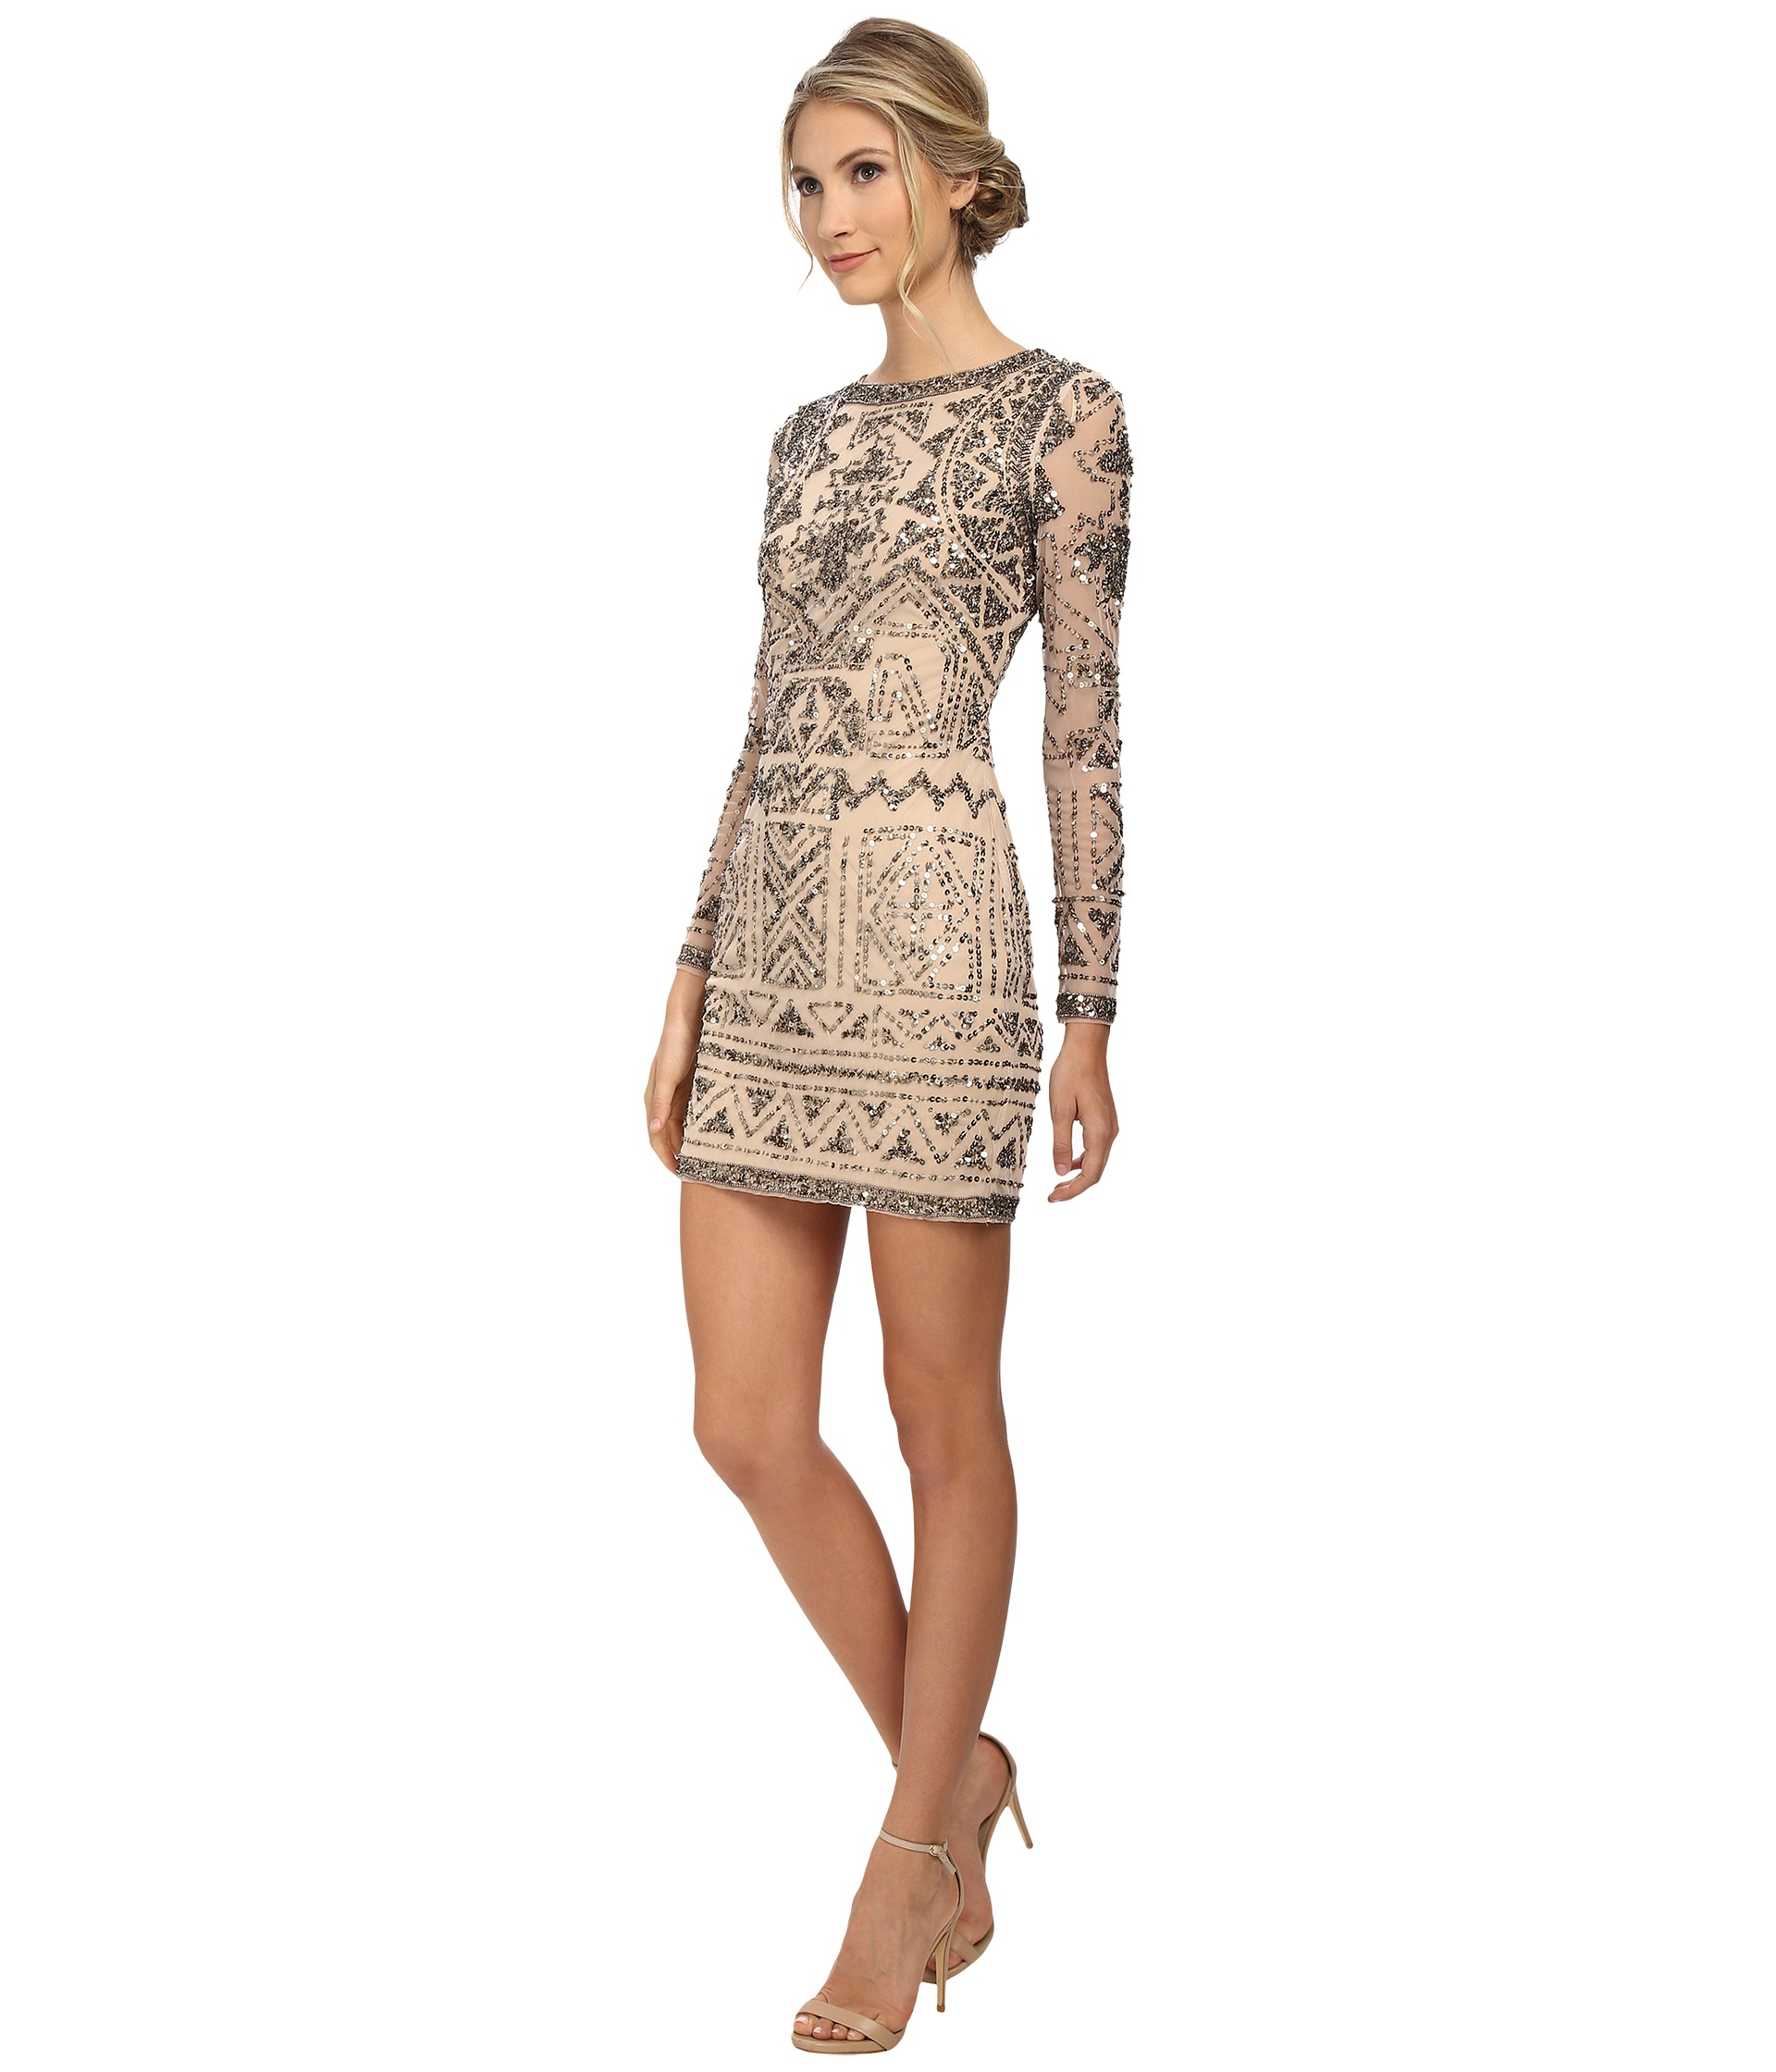 7eb3e85903d Adrianna Papell Long Sleeve Beaded Cocktail Dress in Natural - Lyst